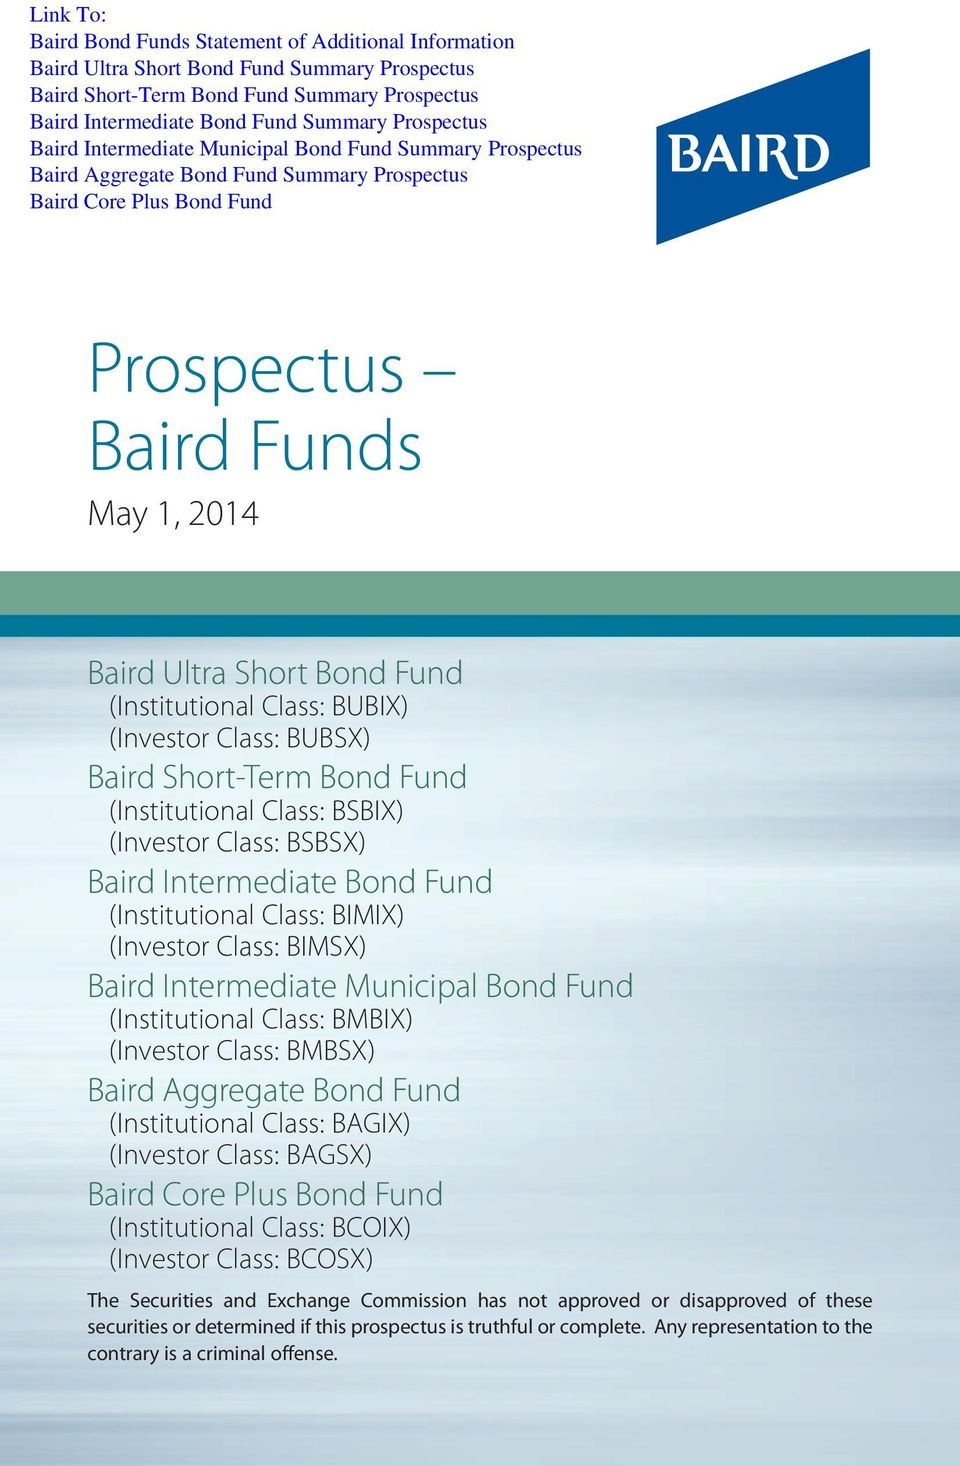 BMBSX) Baird Aggregate Bond Fund (Institutional Class: BAGIX) (Investor Class: BAGSX) Baird Core Plus Bond Fund (Institutional Class: BCOIX) (Investor Class: BCOSX) The Securities and